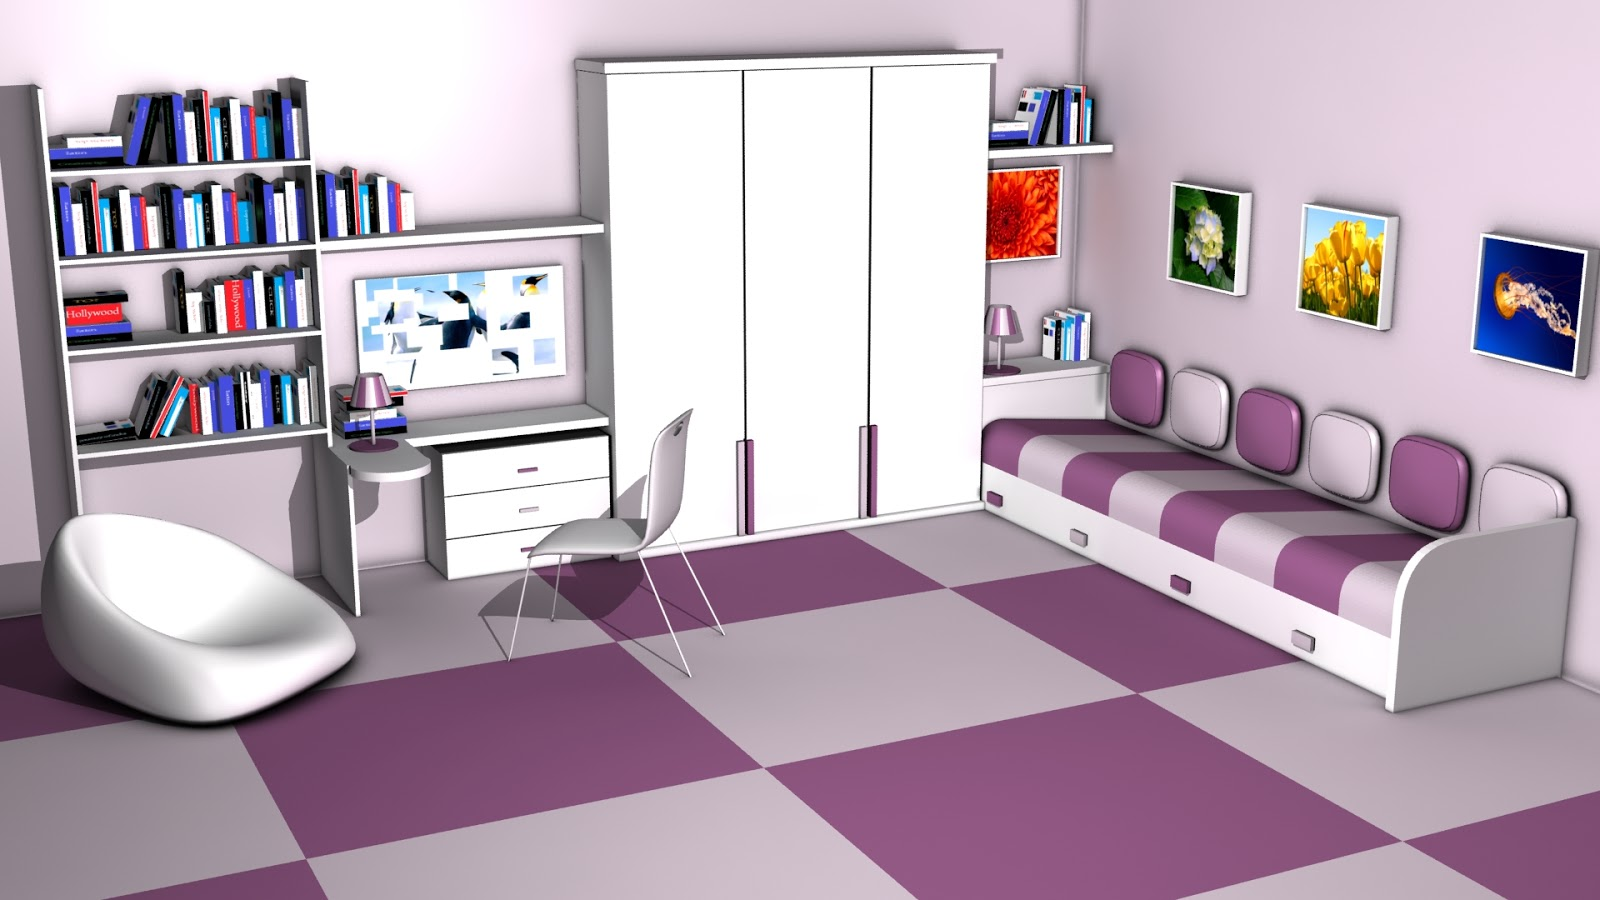 Sajid designs room interior design 3ds max 3d room design online